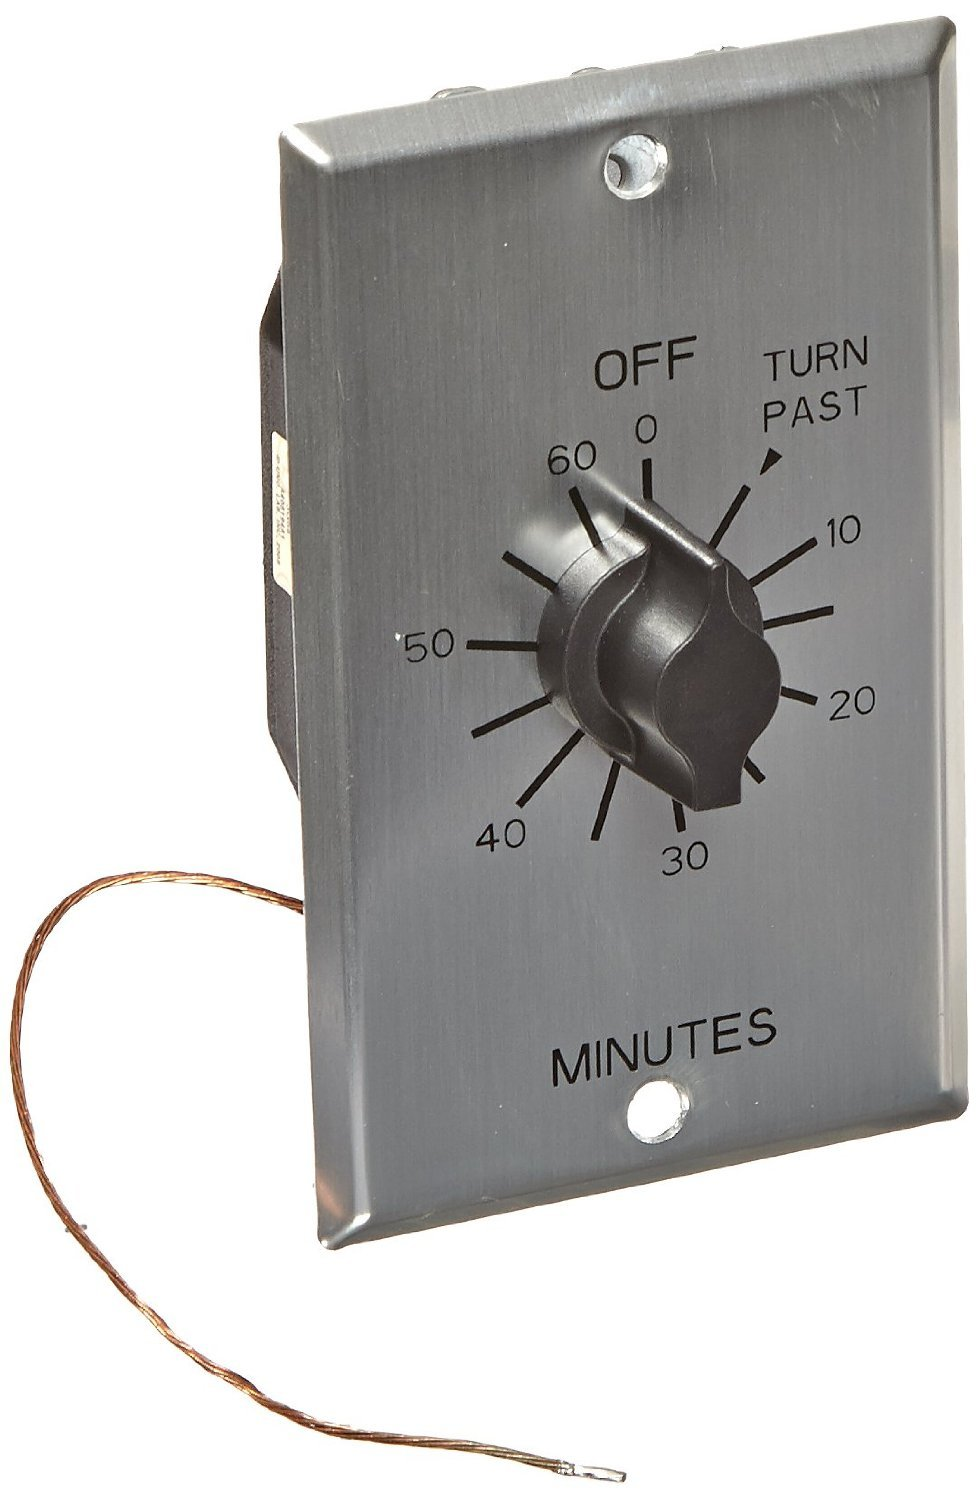 Sauna Manual Timer Vac on Single Pole Double Throw Switch